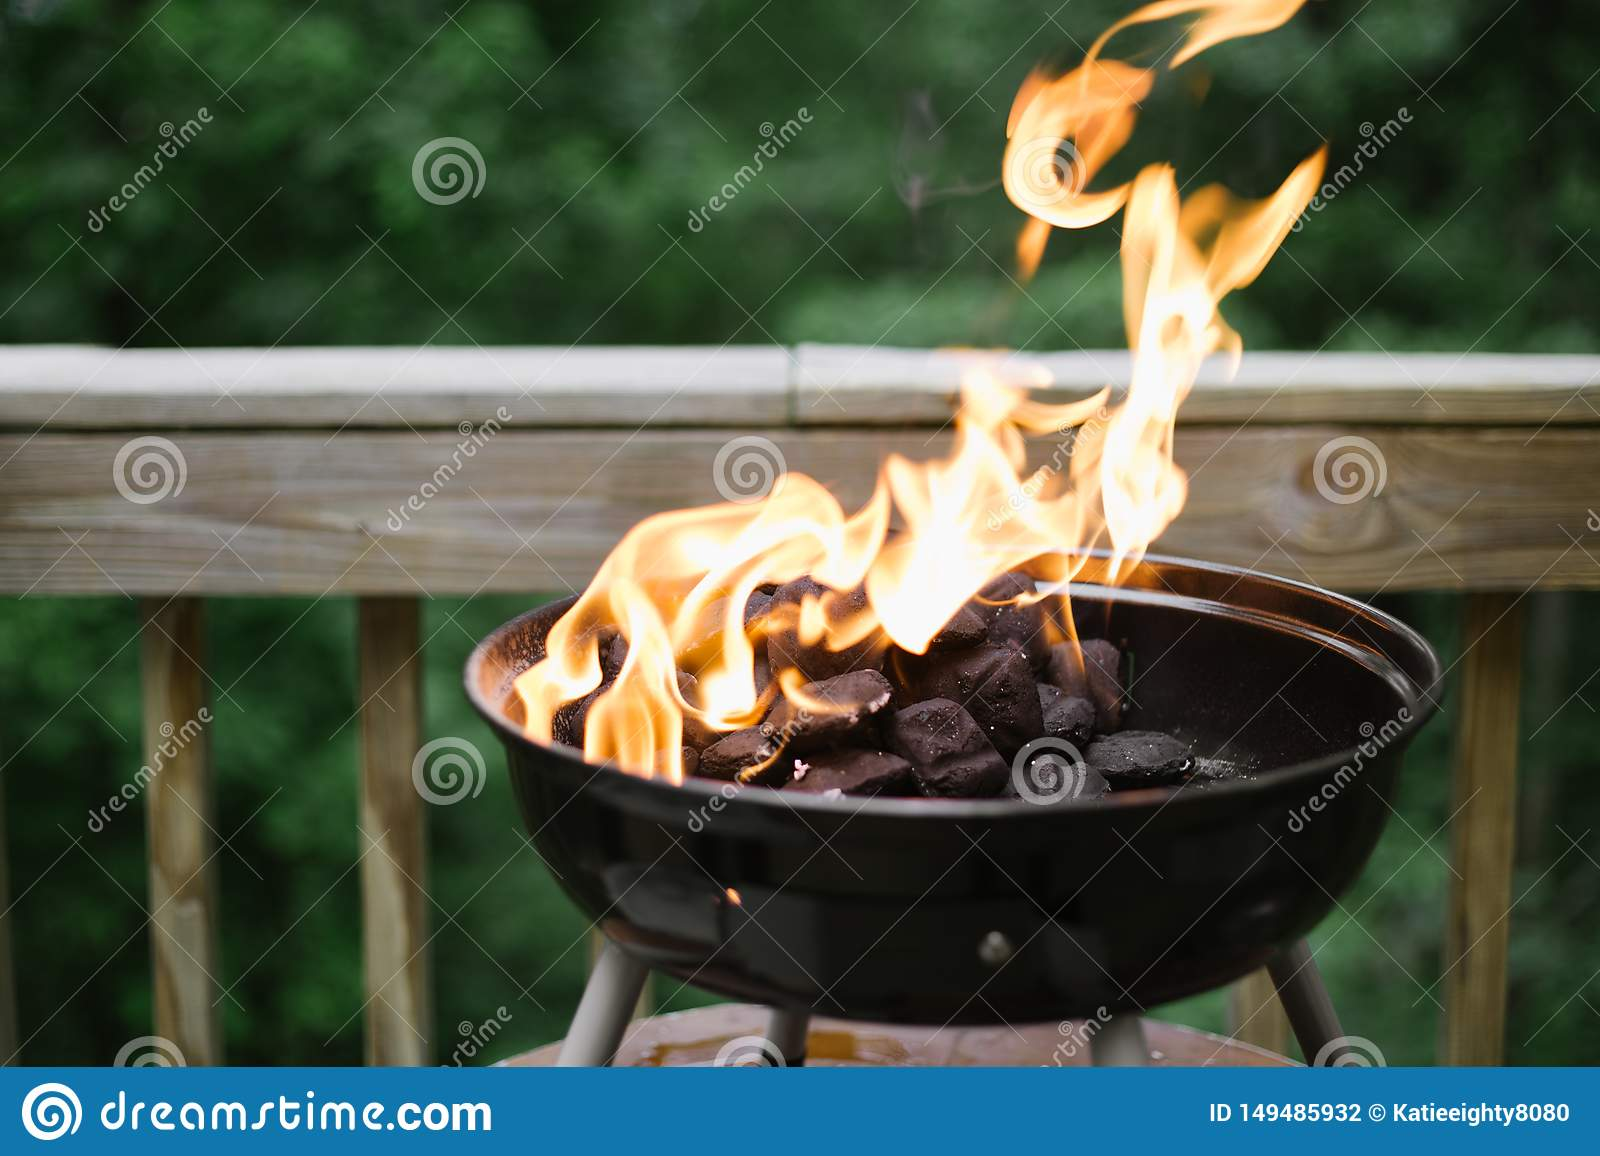 Fire and Flames in A Backyard Barbecue